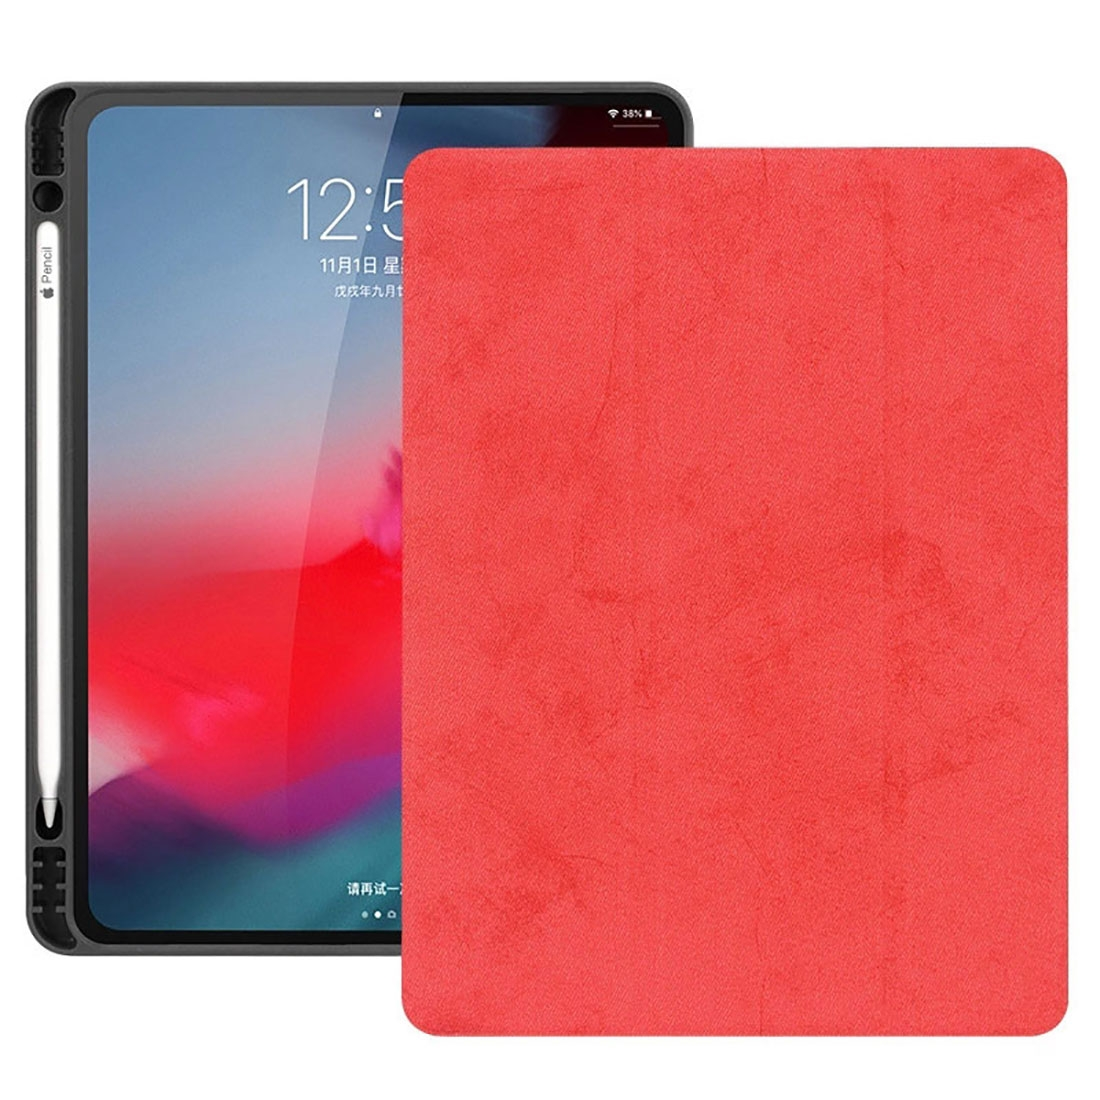 Leather iPad Pro 12.9 Case With Pen Holder, Tri-Fold Stand, Auto Wake/Sleep Functions (2018) (Red)